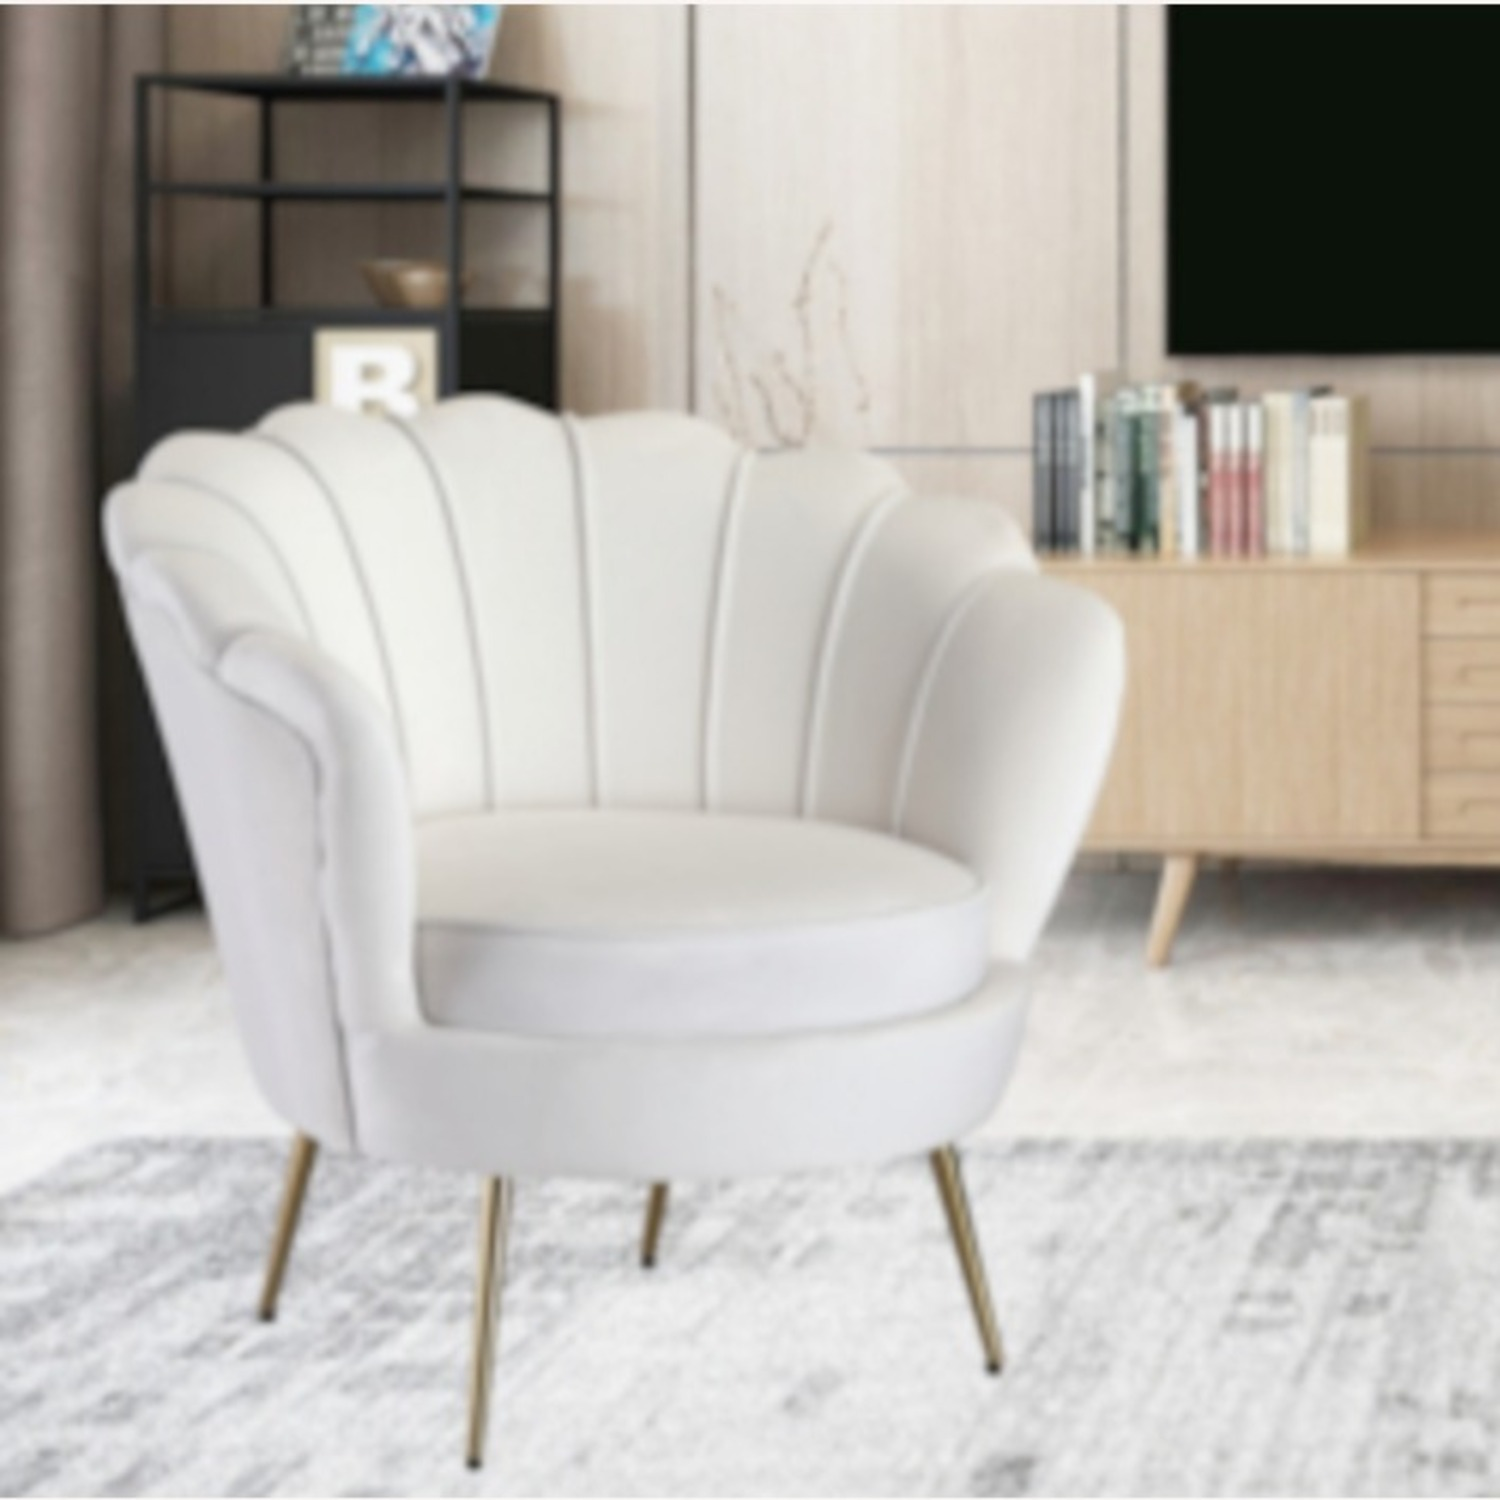 Modern Bridal Chair In White Suede Fabric - image-3